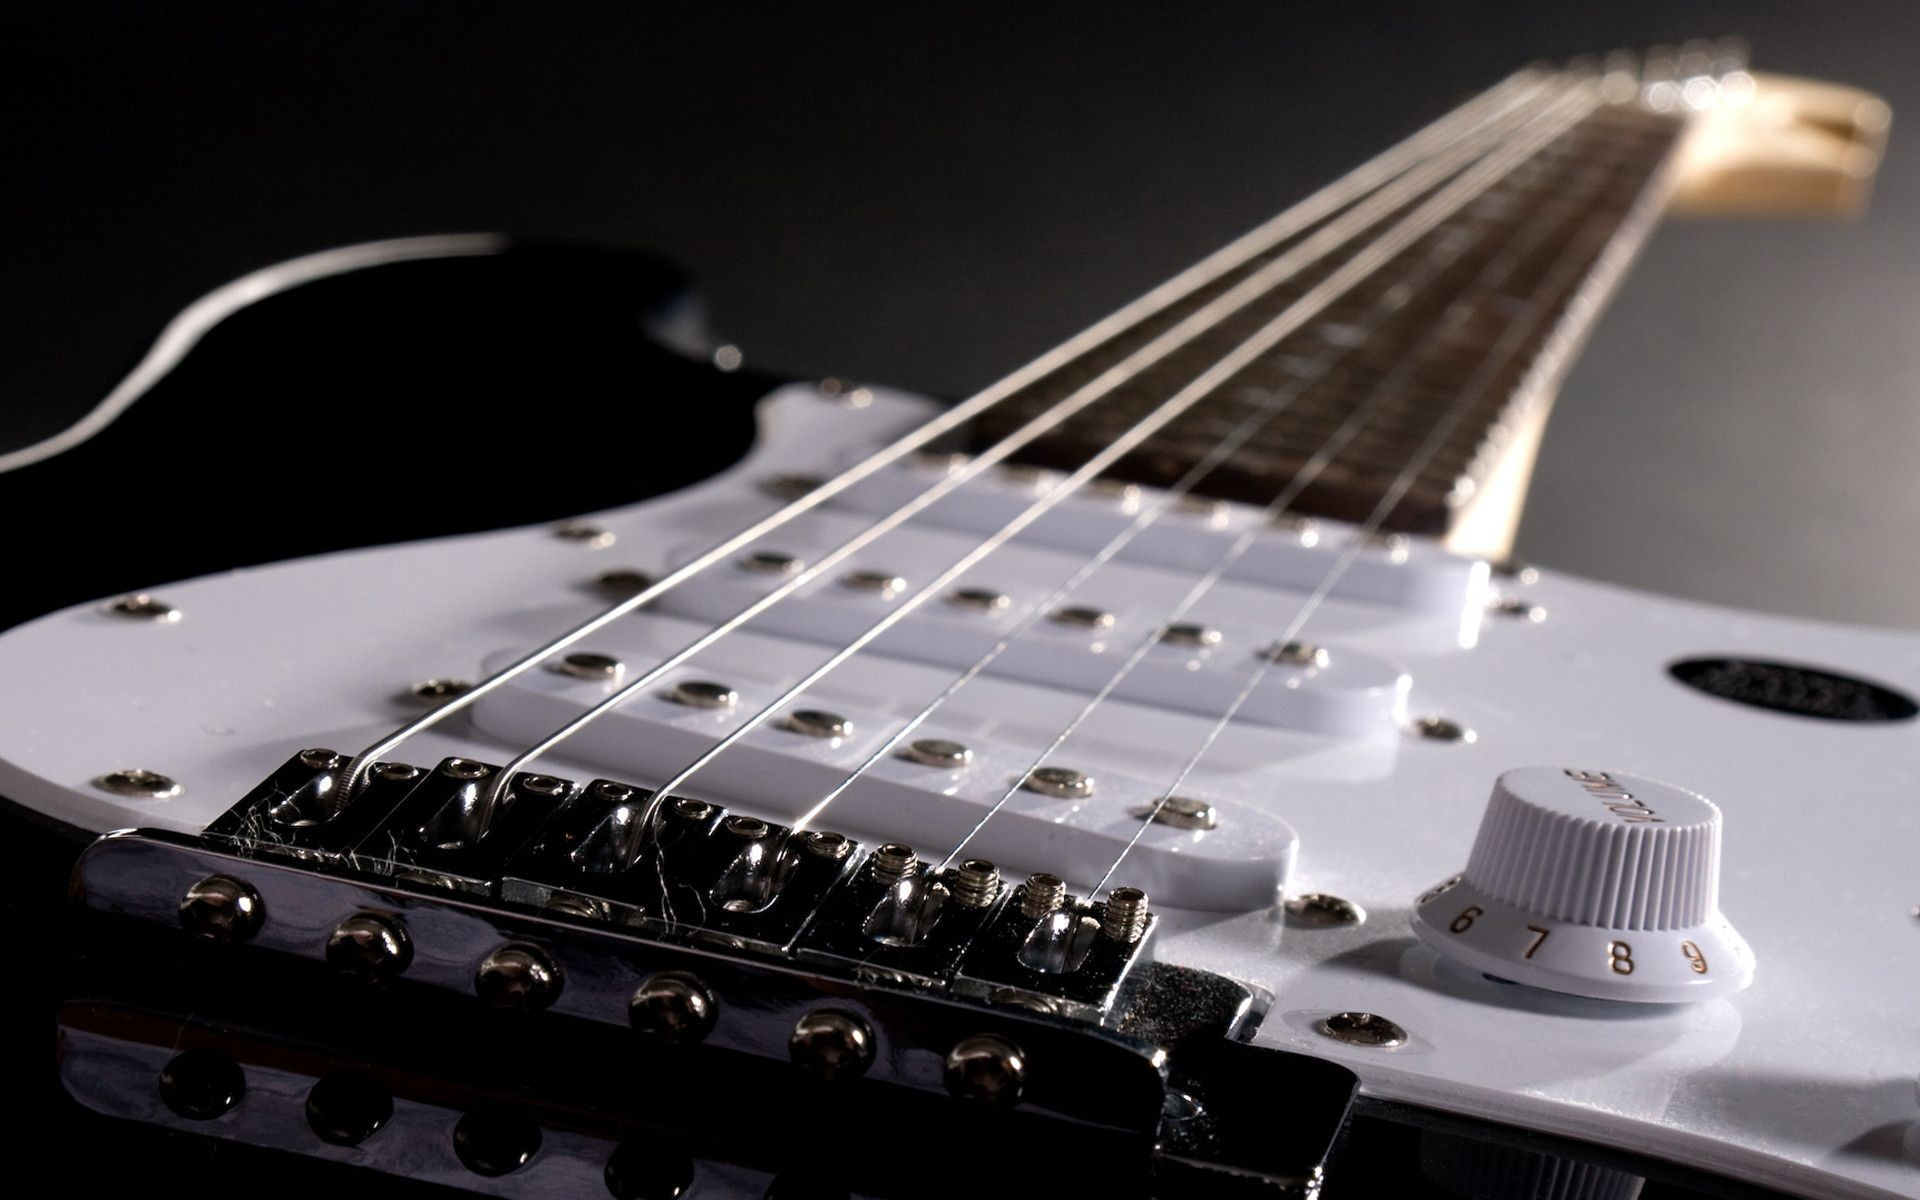 Guitar Wallpapers High Quality Download Free 1920×1200 Wallpapers Of Guitars  (38 Wallpapers)